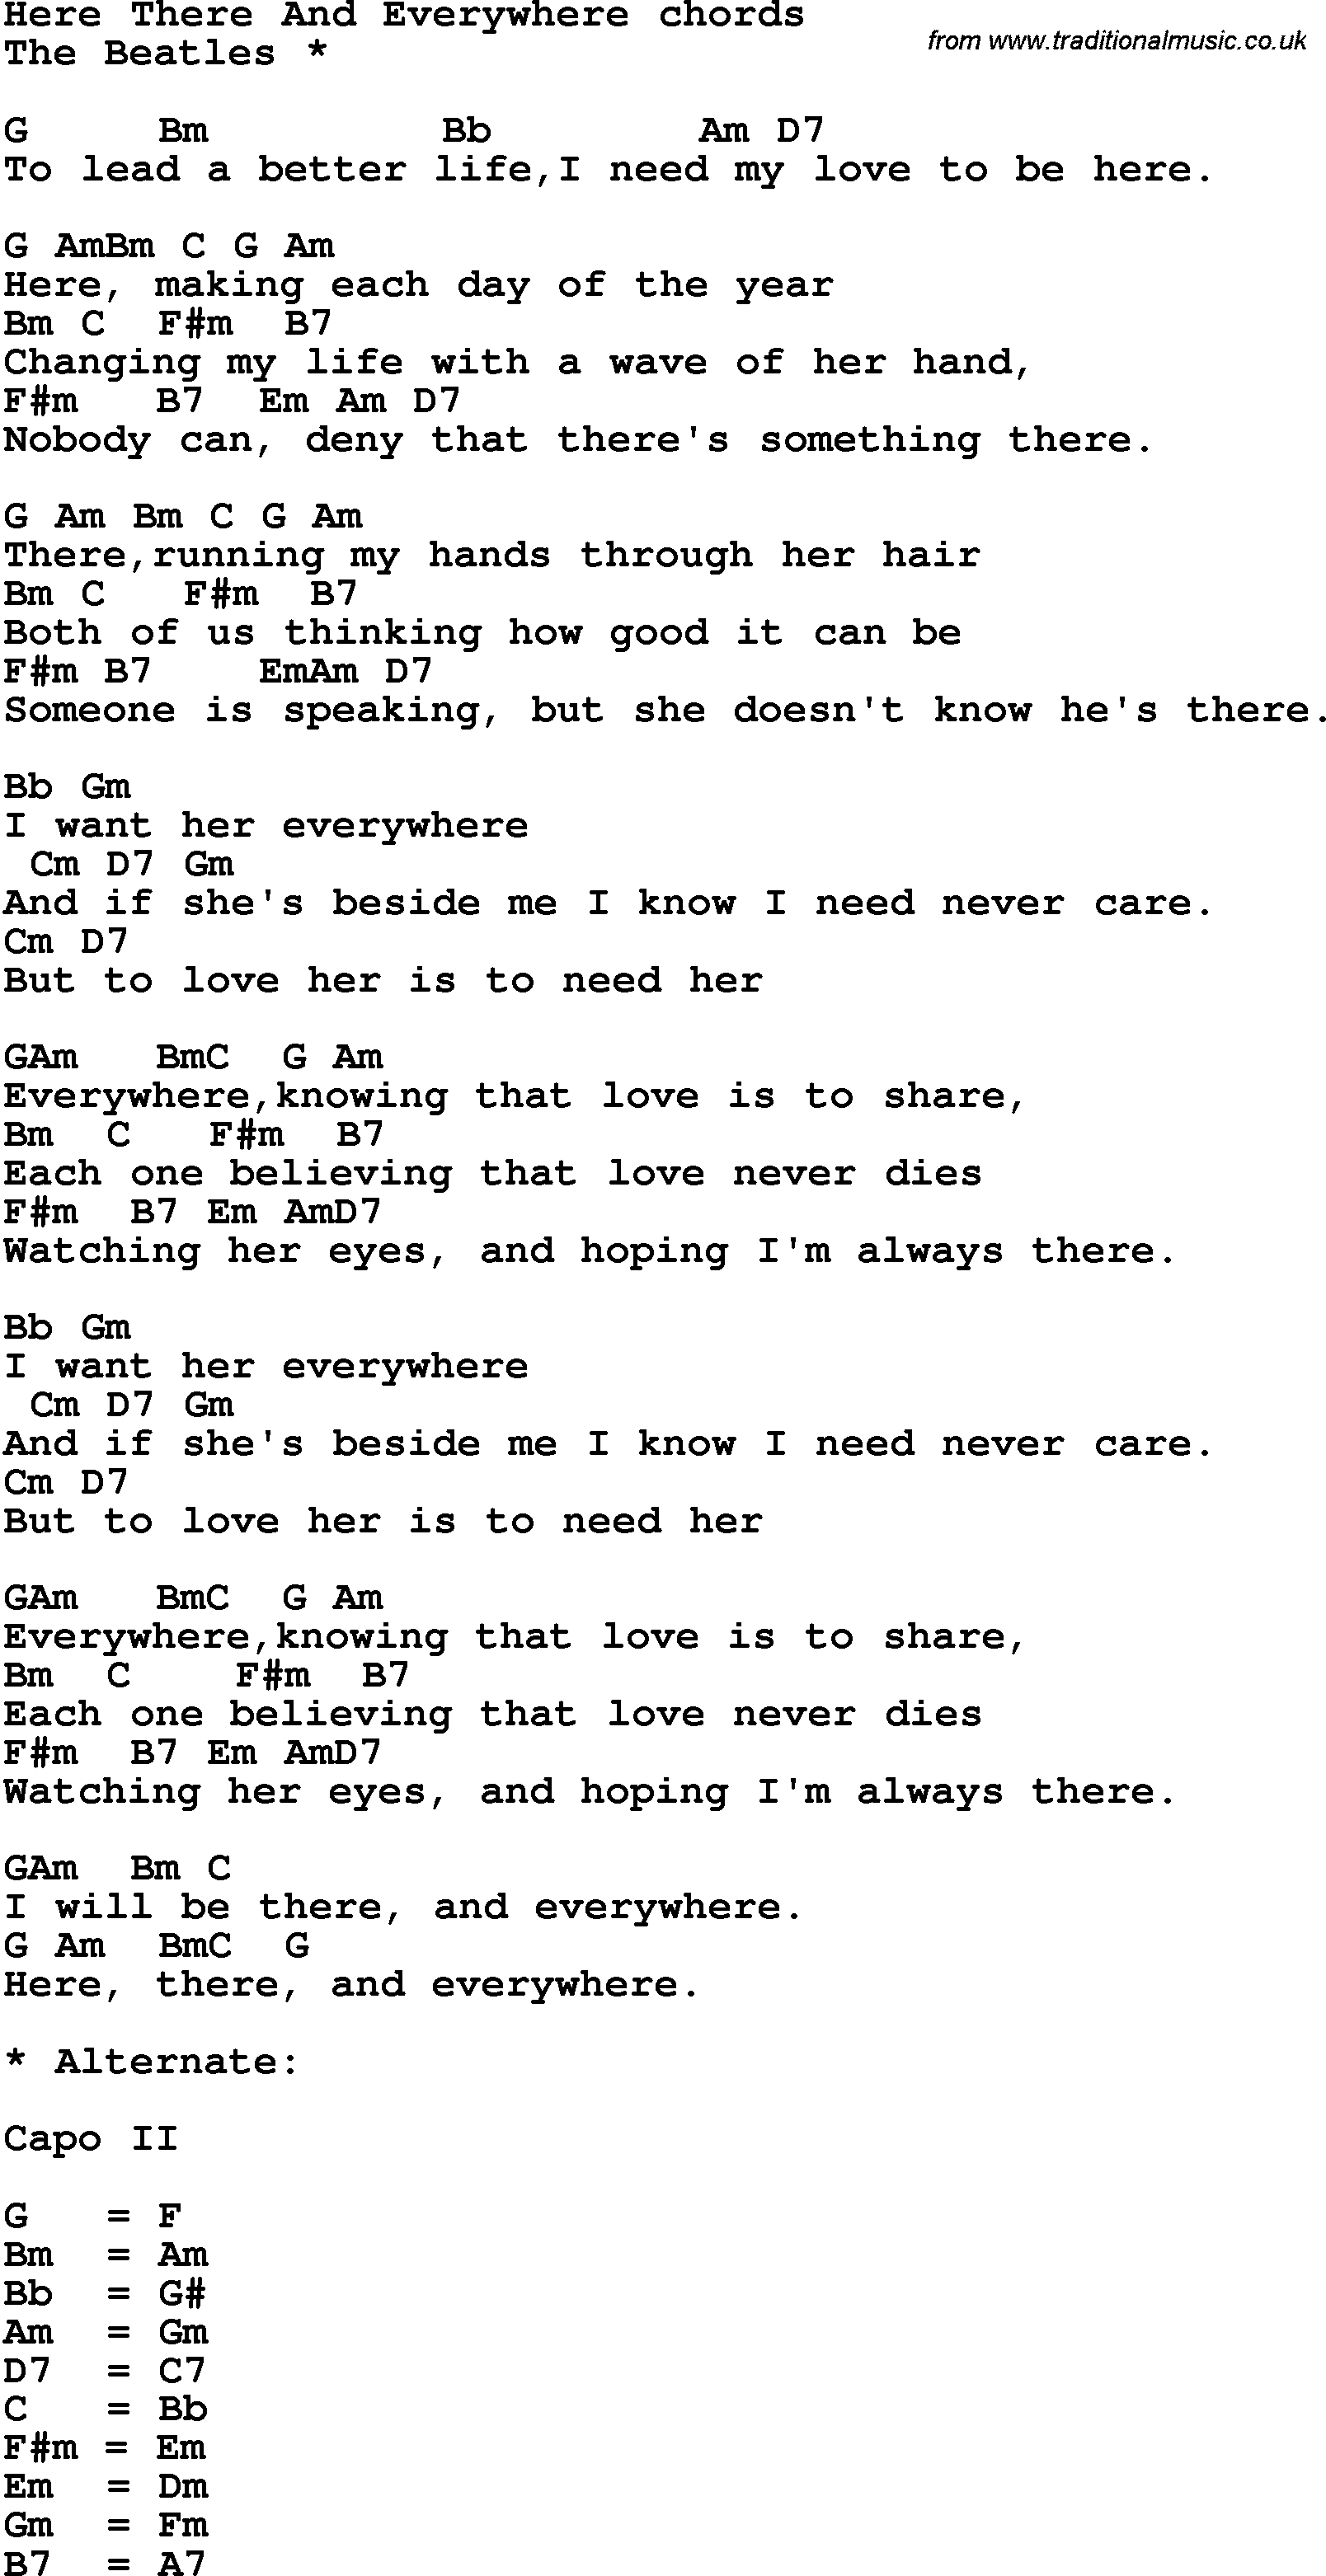 Song lyrics with guitar chords for Here There And Everywhere